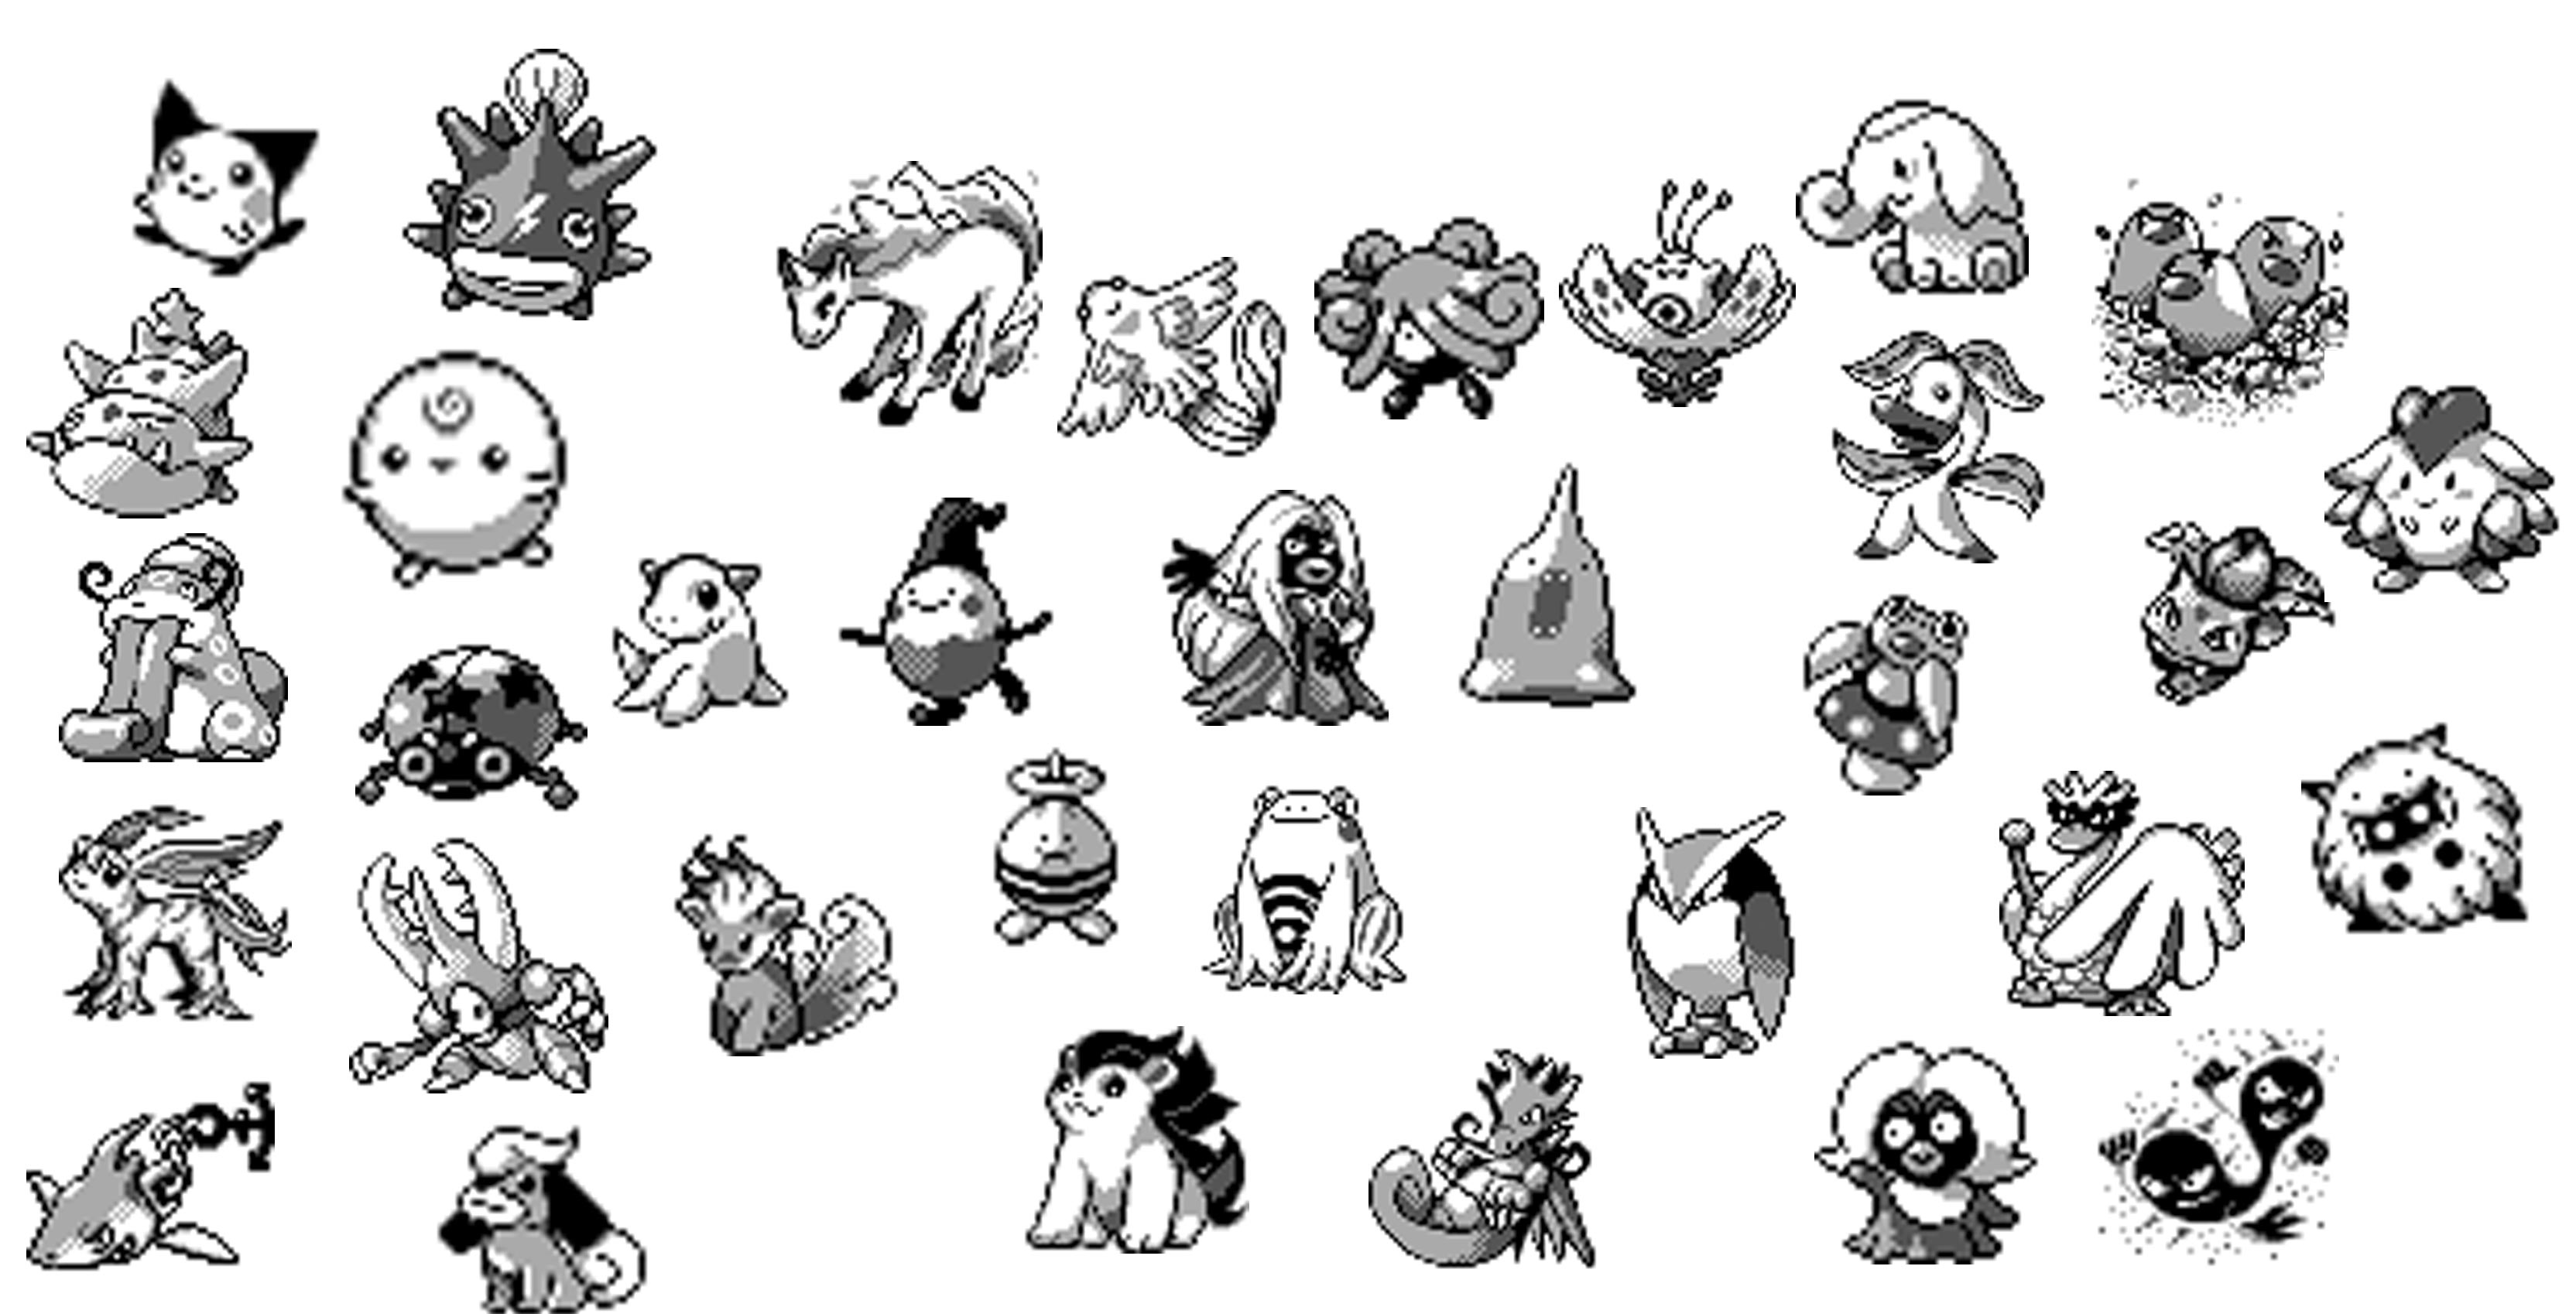 Dataminers Have Found Unreleased Pokemon Sprites In Gold